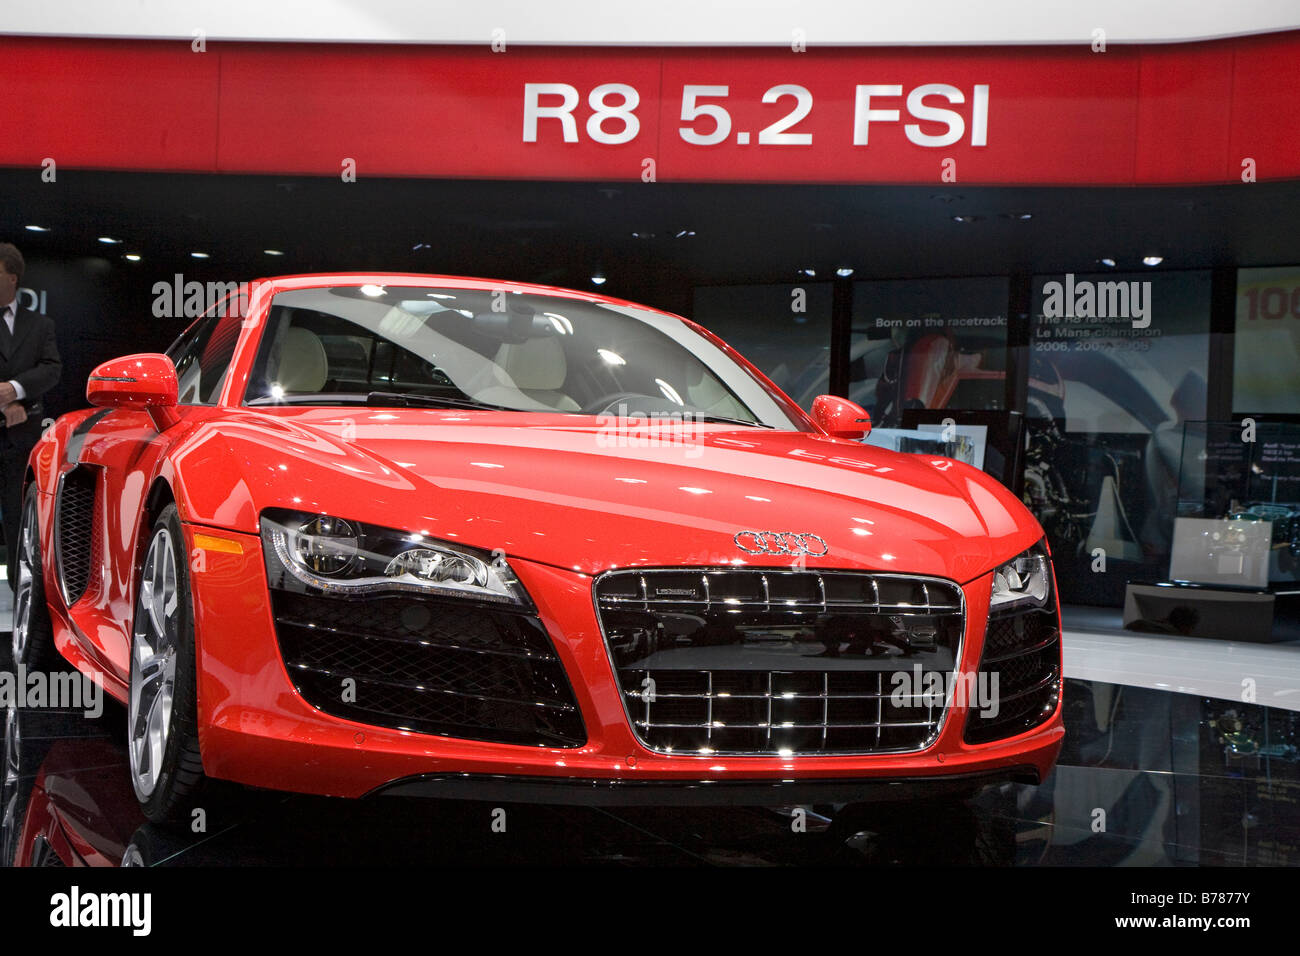 Detroit Michigan The Audi R8 V10 sports car on display at the North American International Auto Show - Stock Image